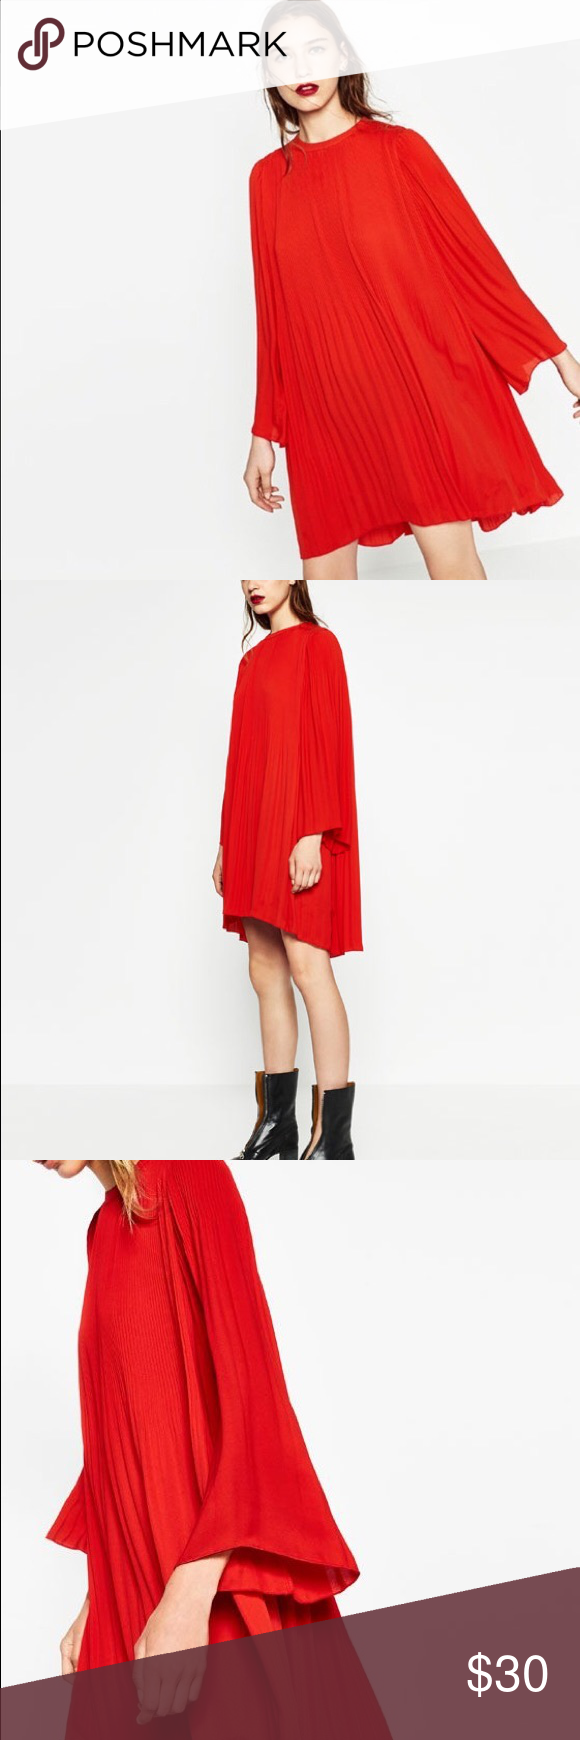 Zara red pleated dress zara dresses conditioning and customer support